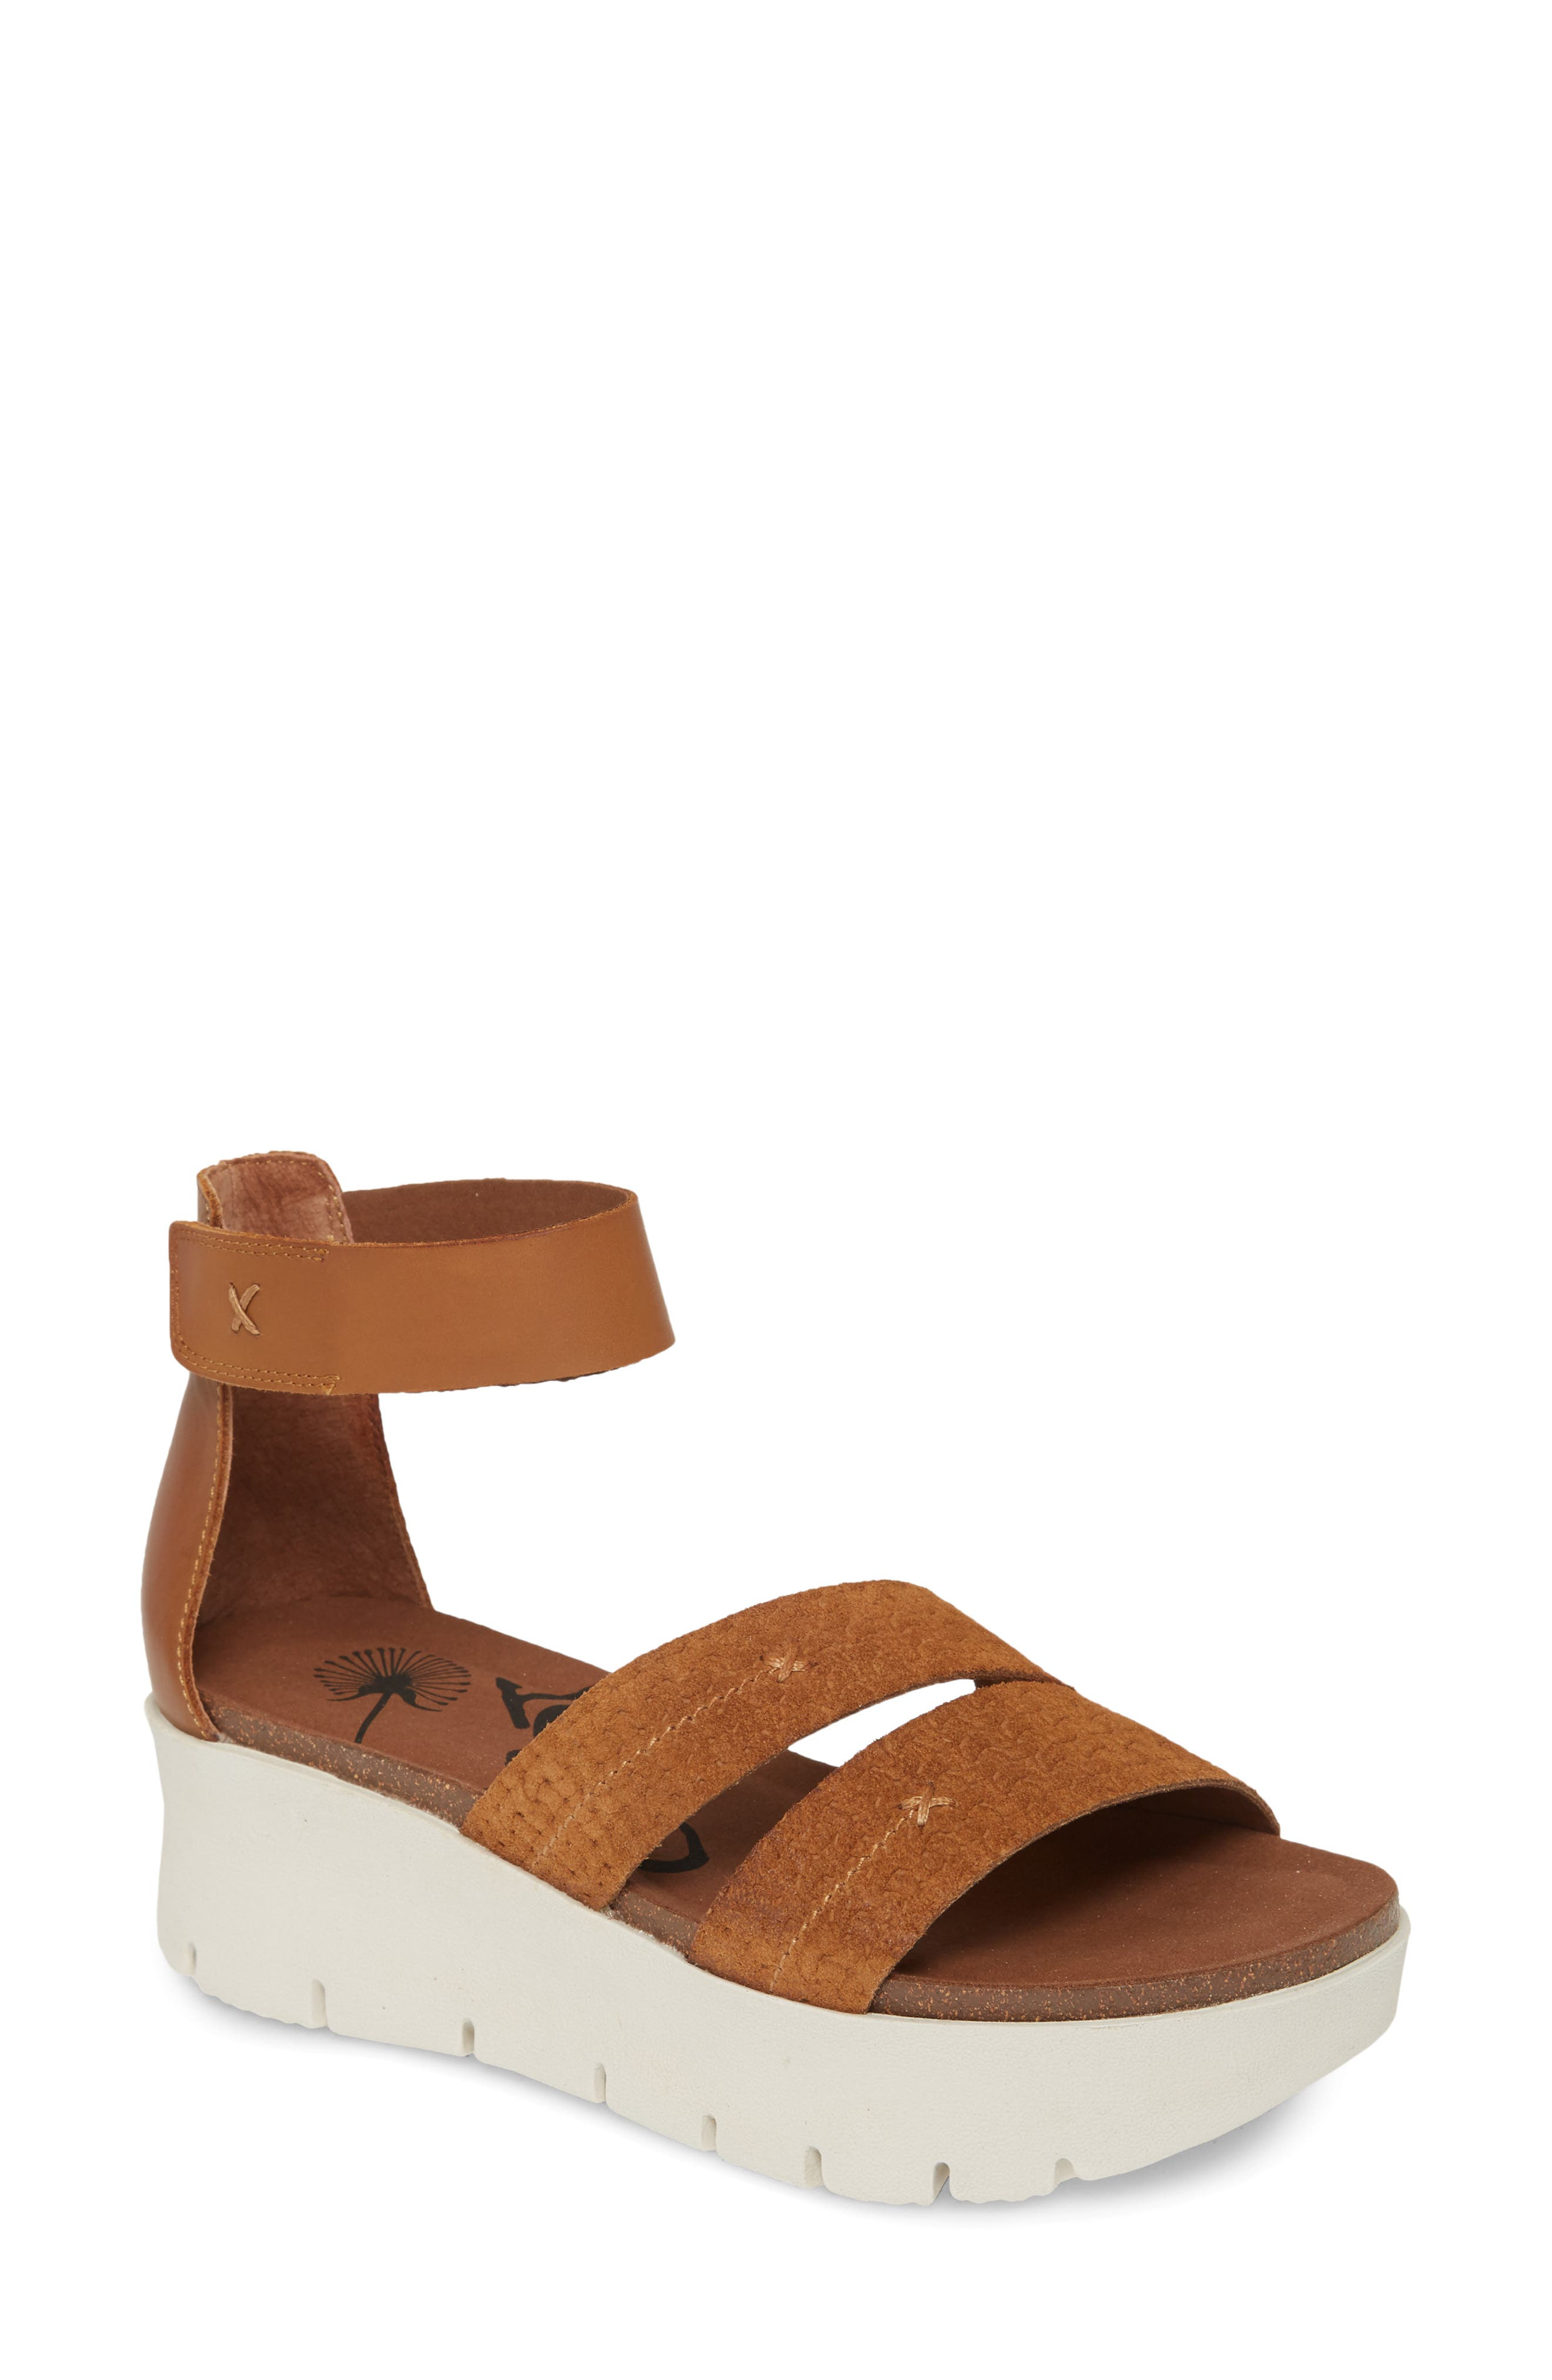 A topstitched \\\'X\\\' marks the strap of a lightweight, travel-ready sandal designed with a cushy memory foam footbed atop a sporty platform sole. Style Name: Otbt Montauk Platform Sandal (Women). Style Number: 6001754. Available in stores.